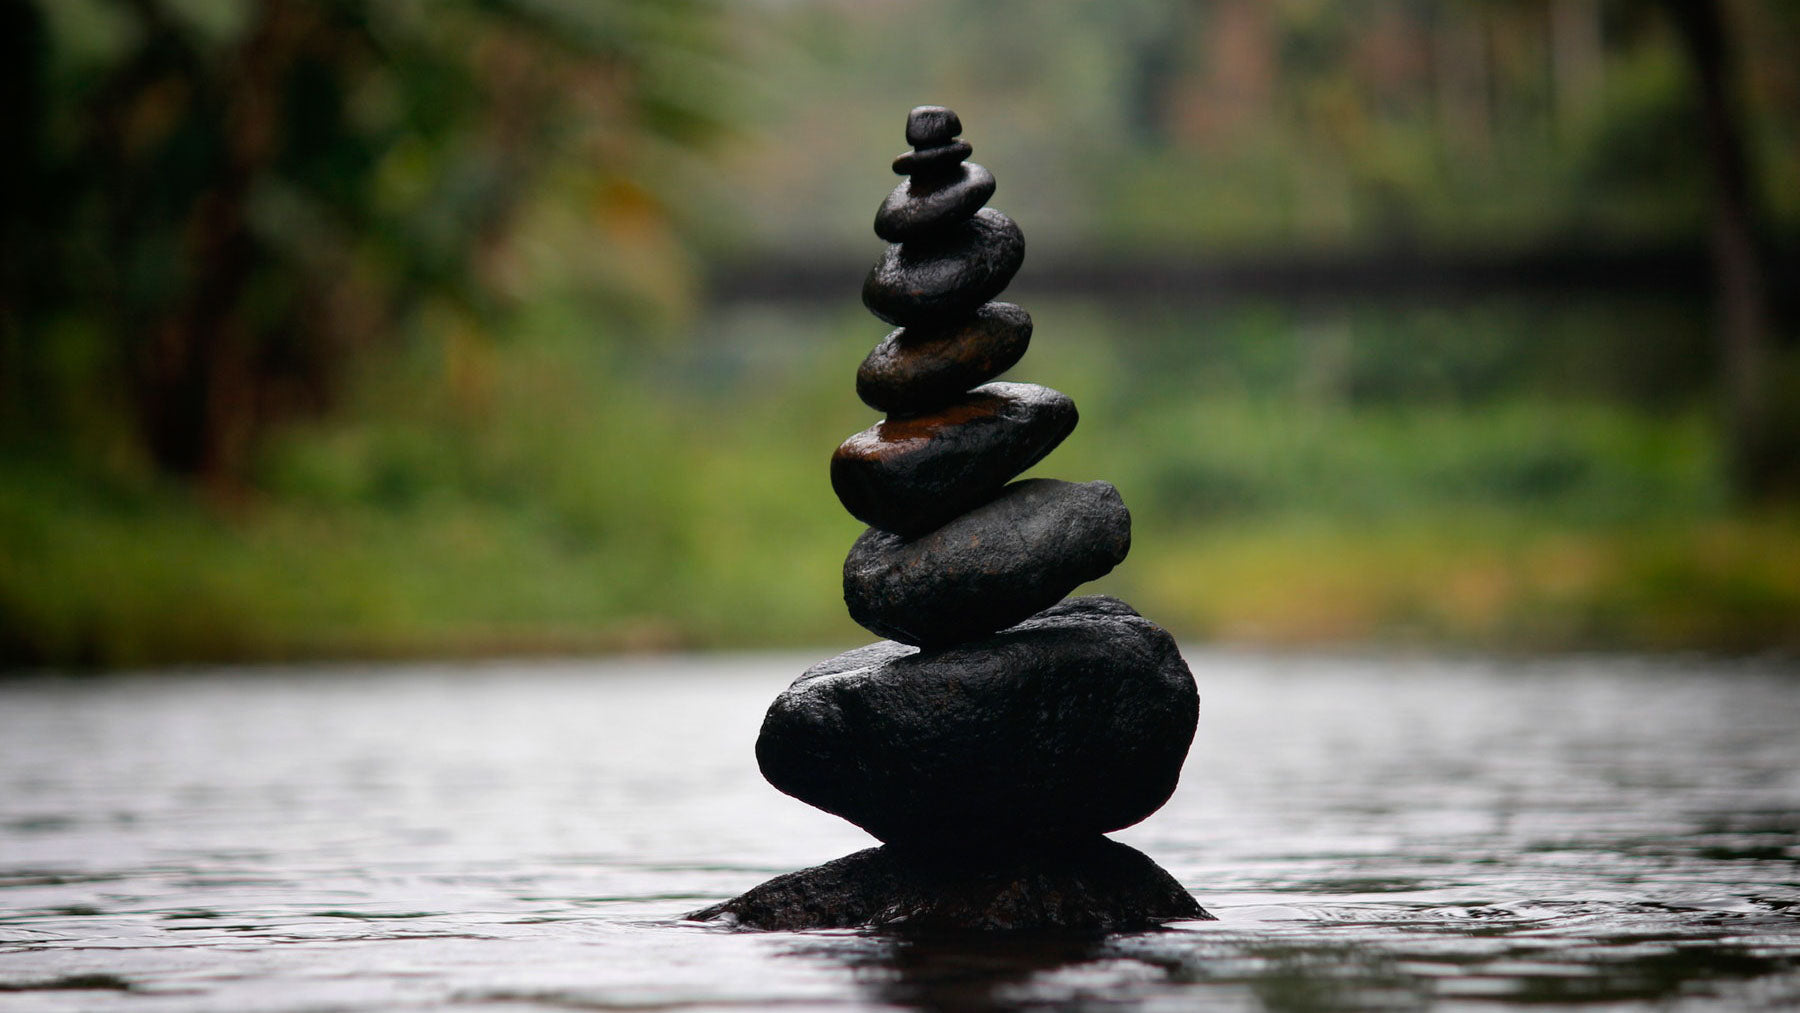 stack of stones balancing on top of one another to represent a peaceful life without alcohol